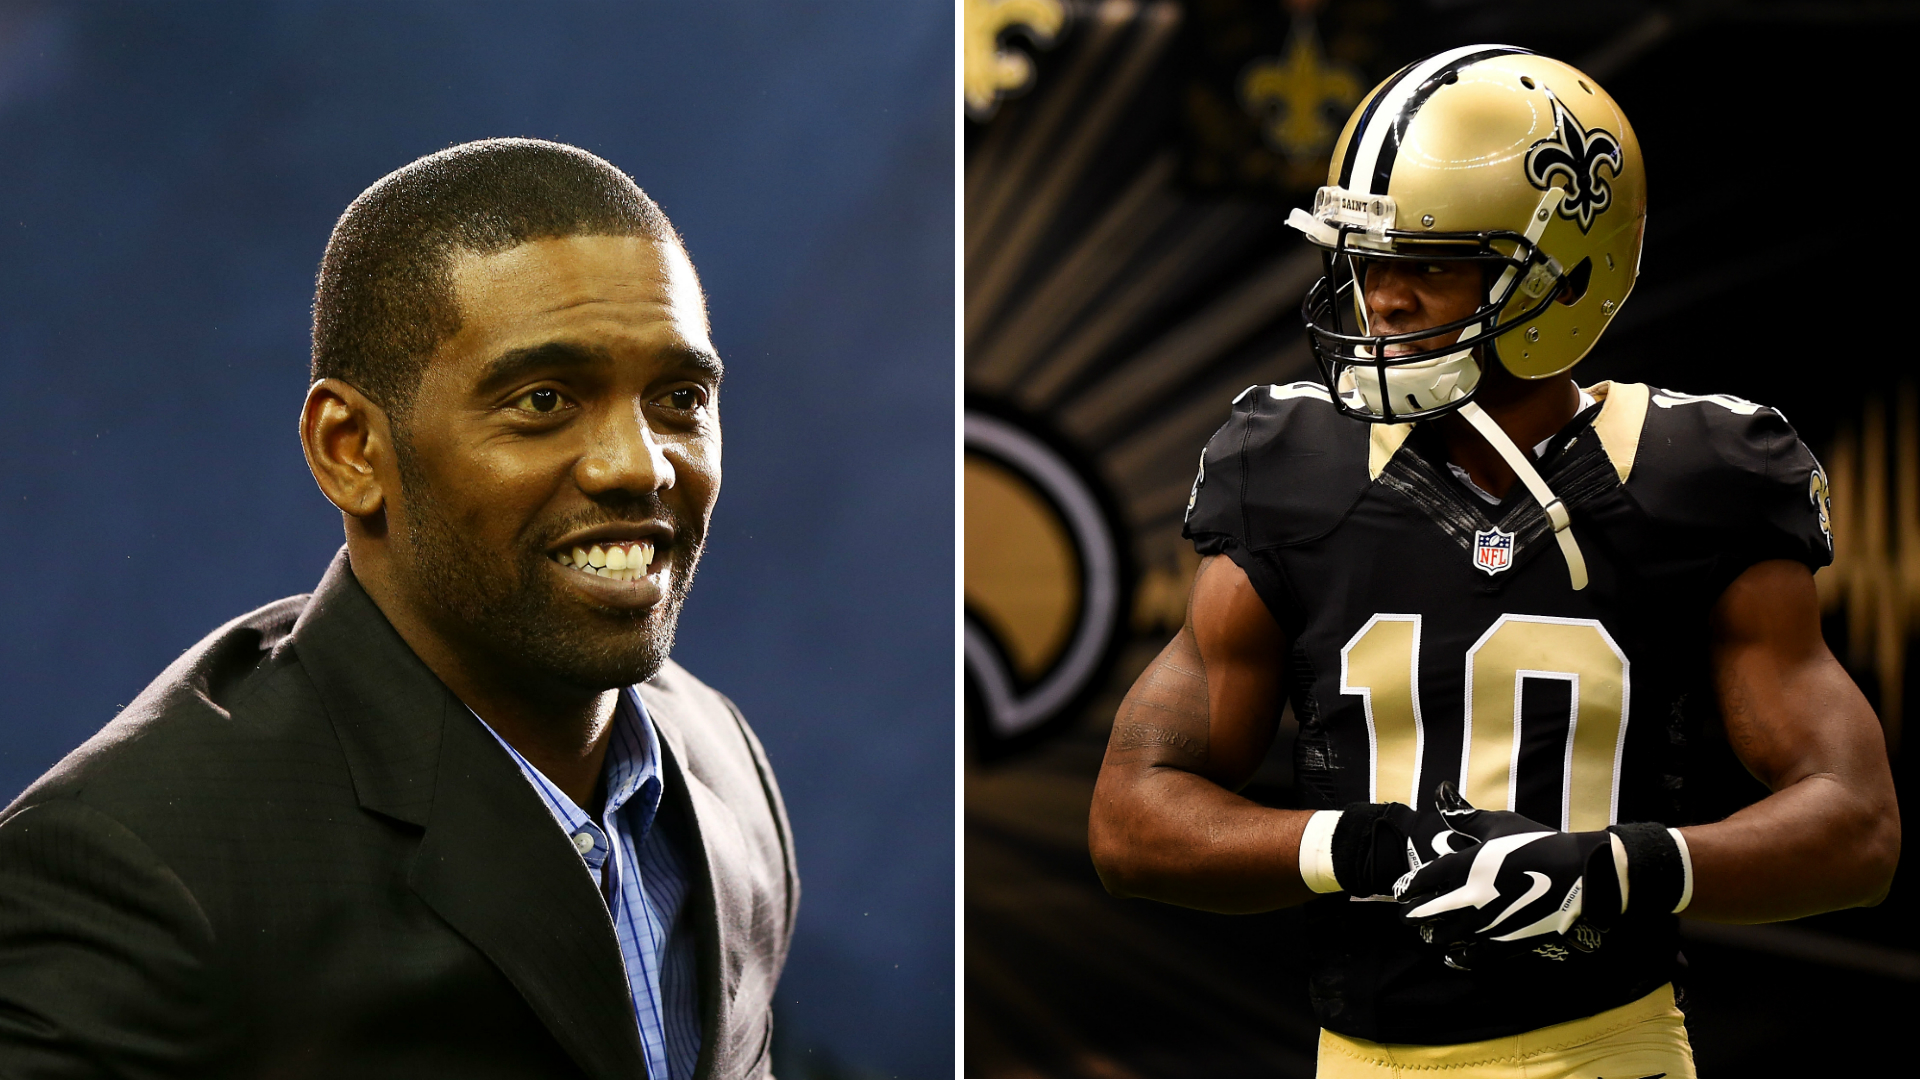 Brandin Cooks the new Randy Moss for the Patriots